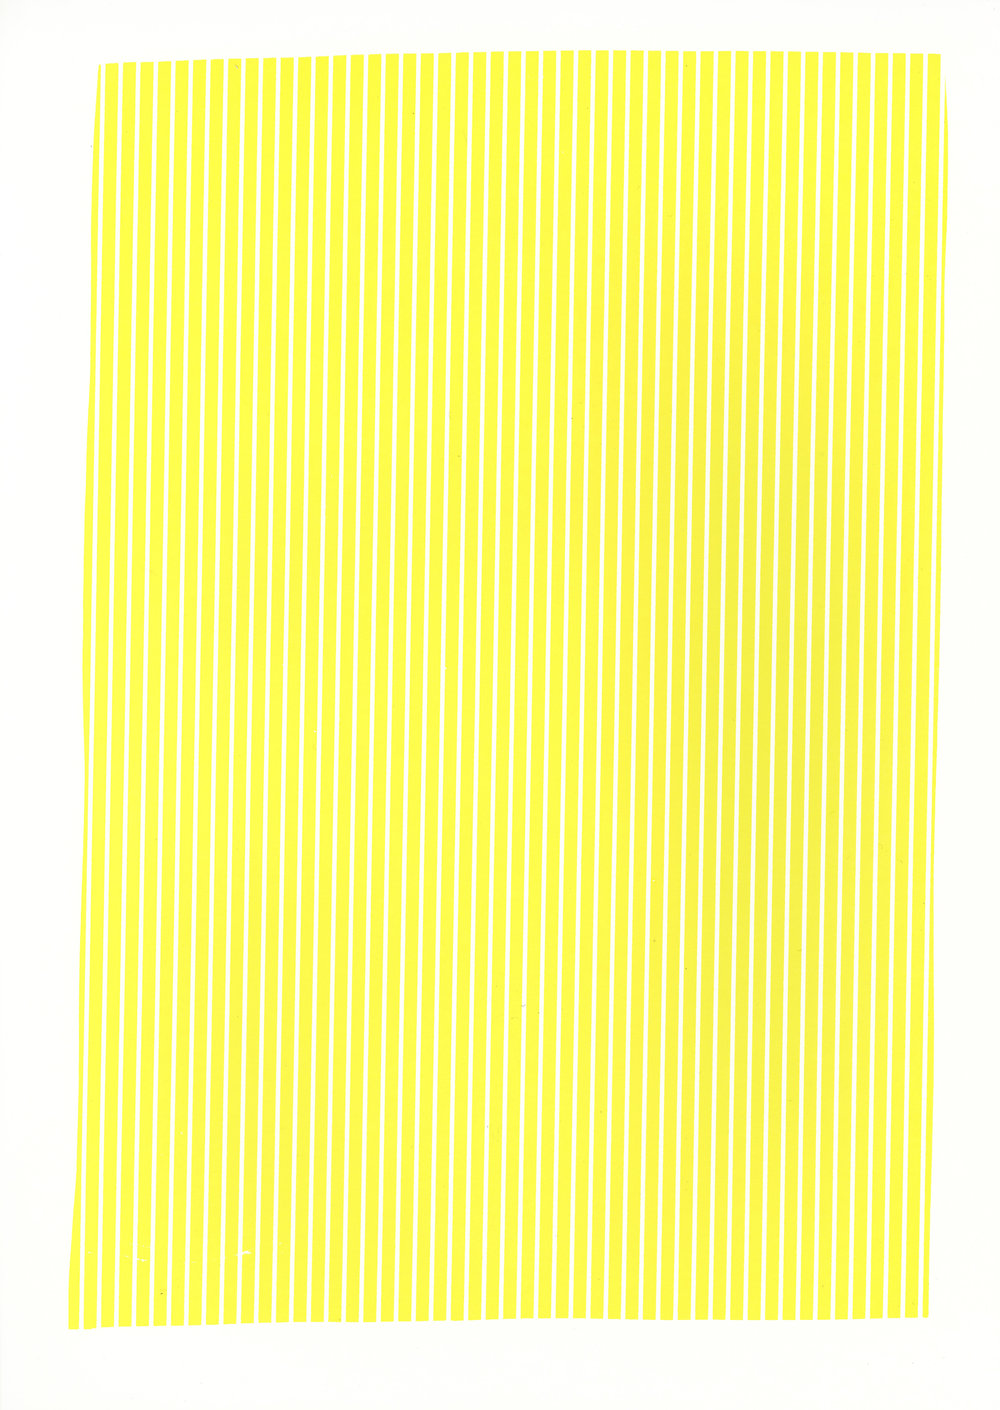 "Yellow study, 2017, silkscreen, 19"" x 12.5"""